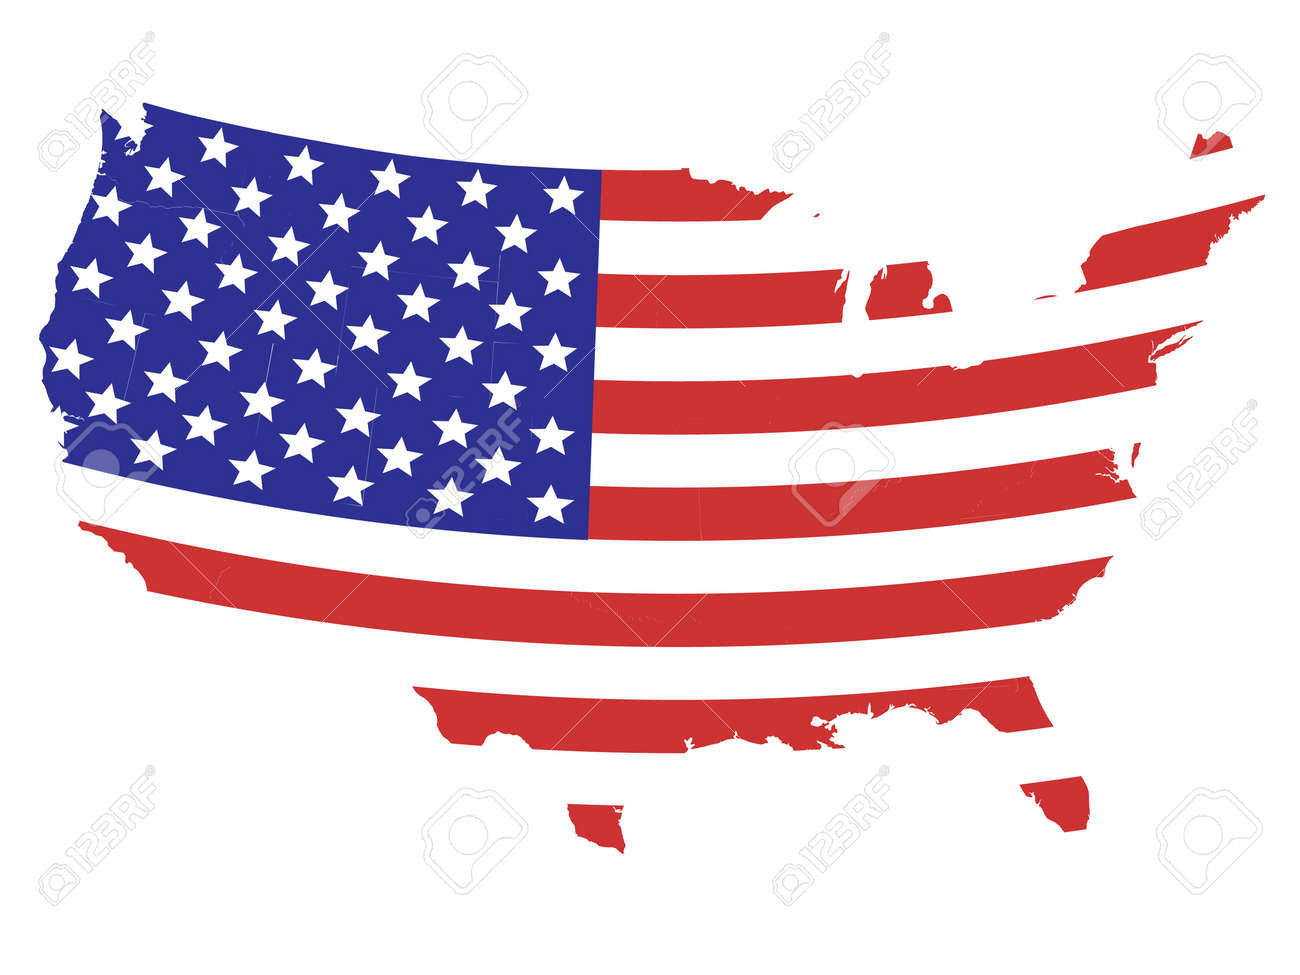 FileFlag Map Of Canada And United States American Flagpng Free